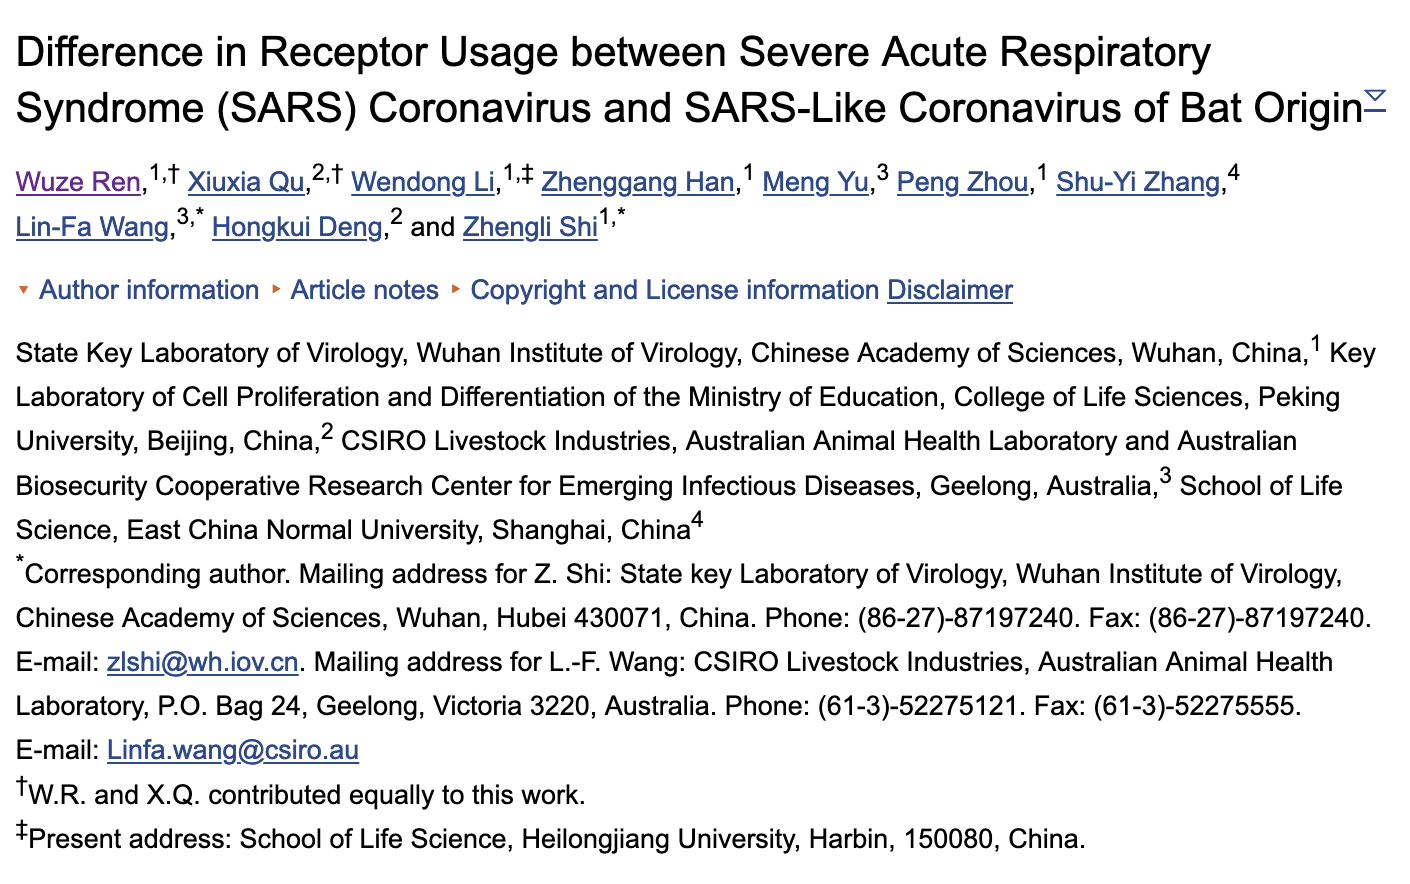 auth info 1 Evidence SARS-CoV-2 Emerged From a Biological Laboratory in Wuhan, China